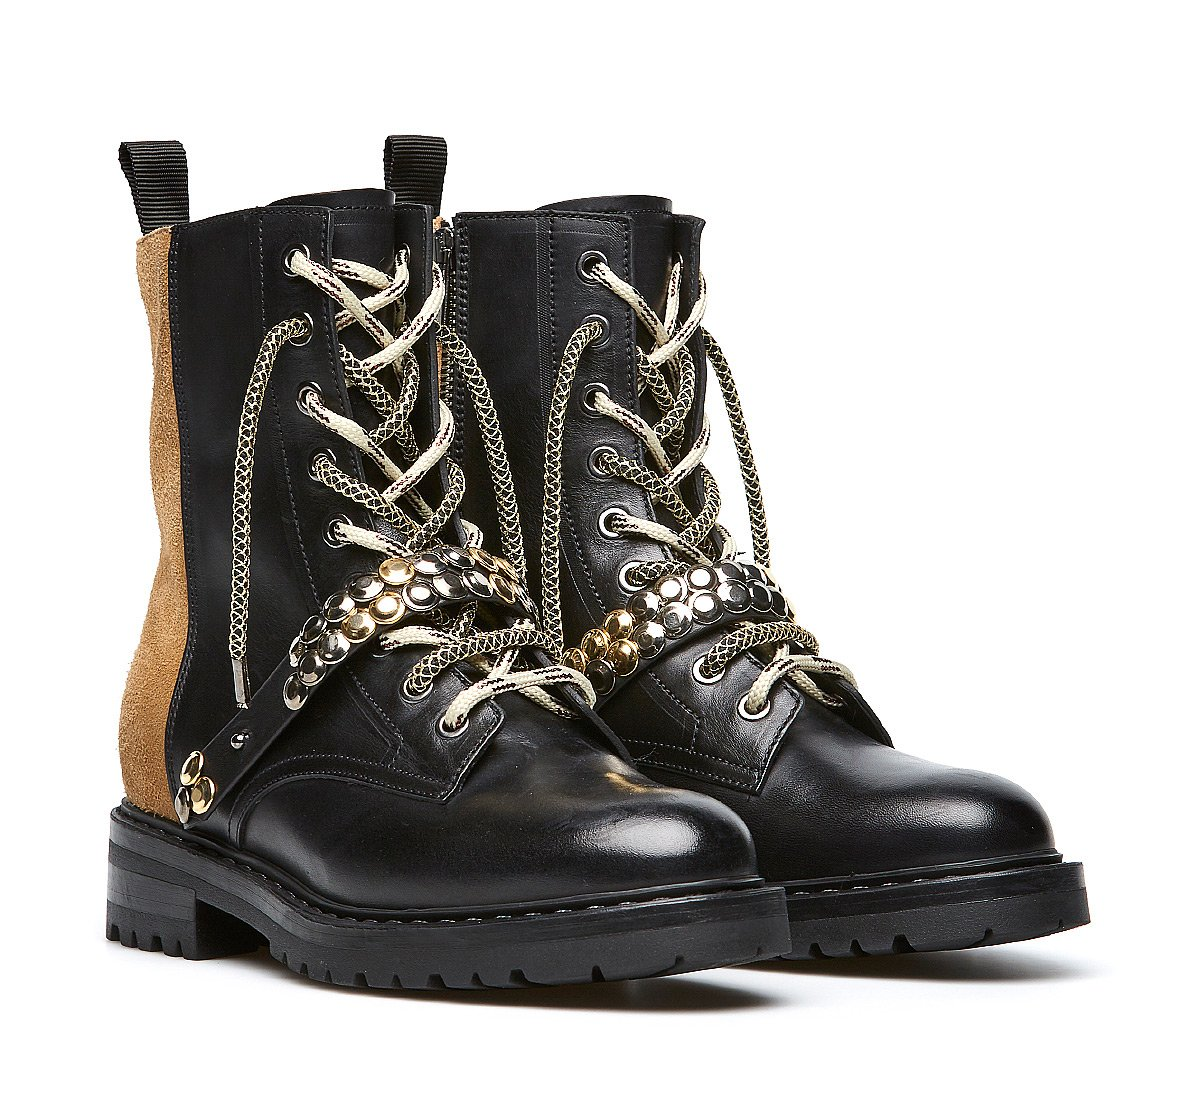 Barracuda Rock combat boots in exquisite calfskin